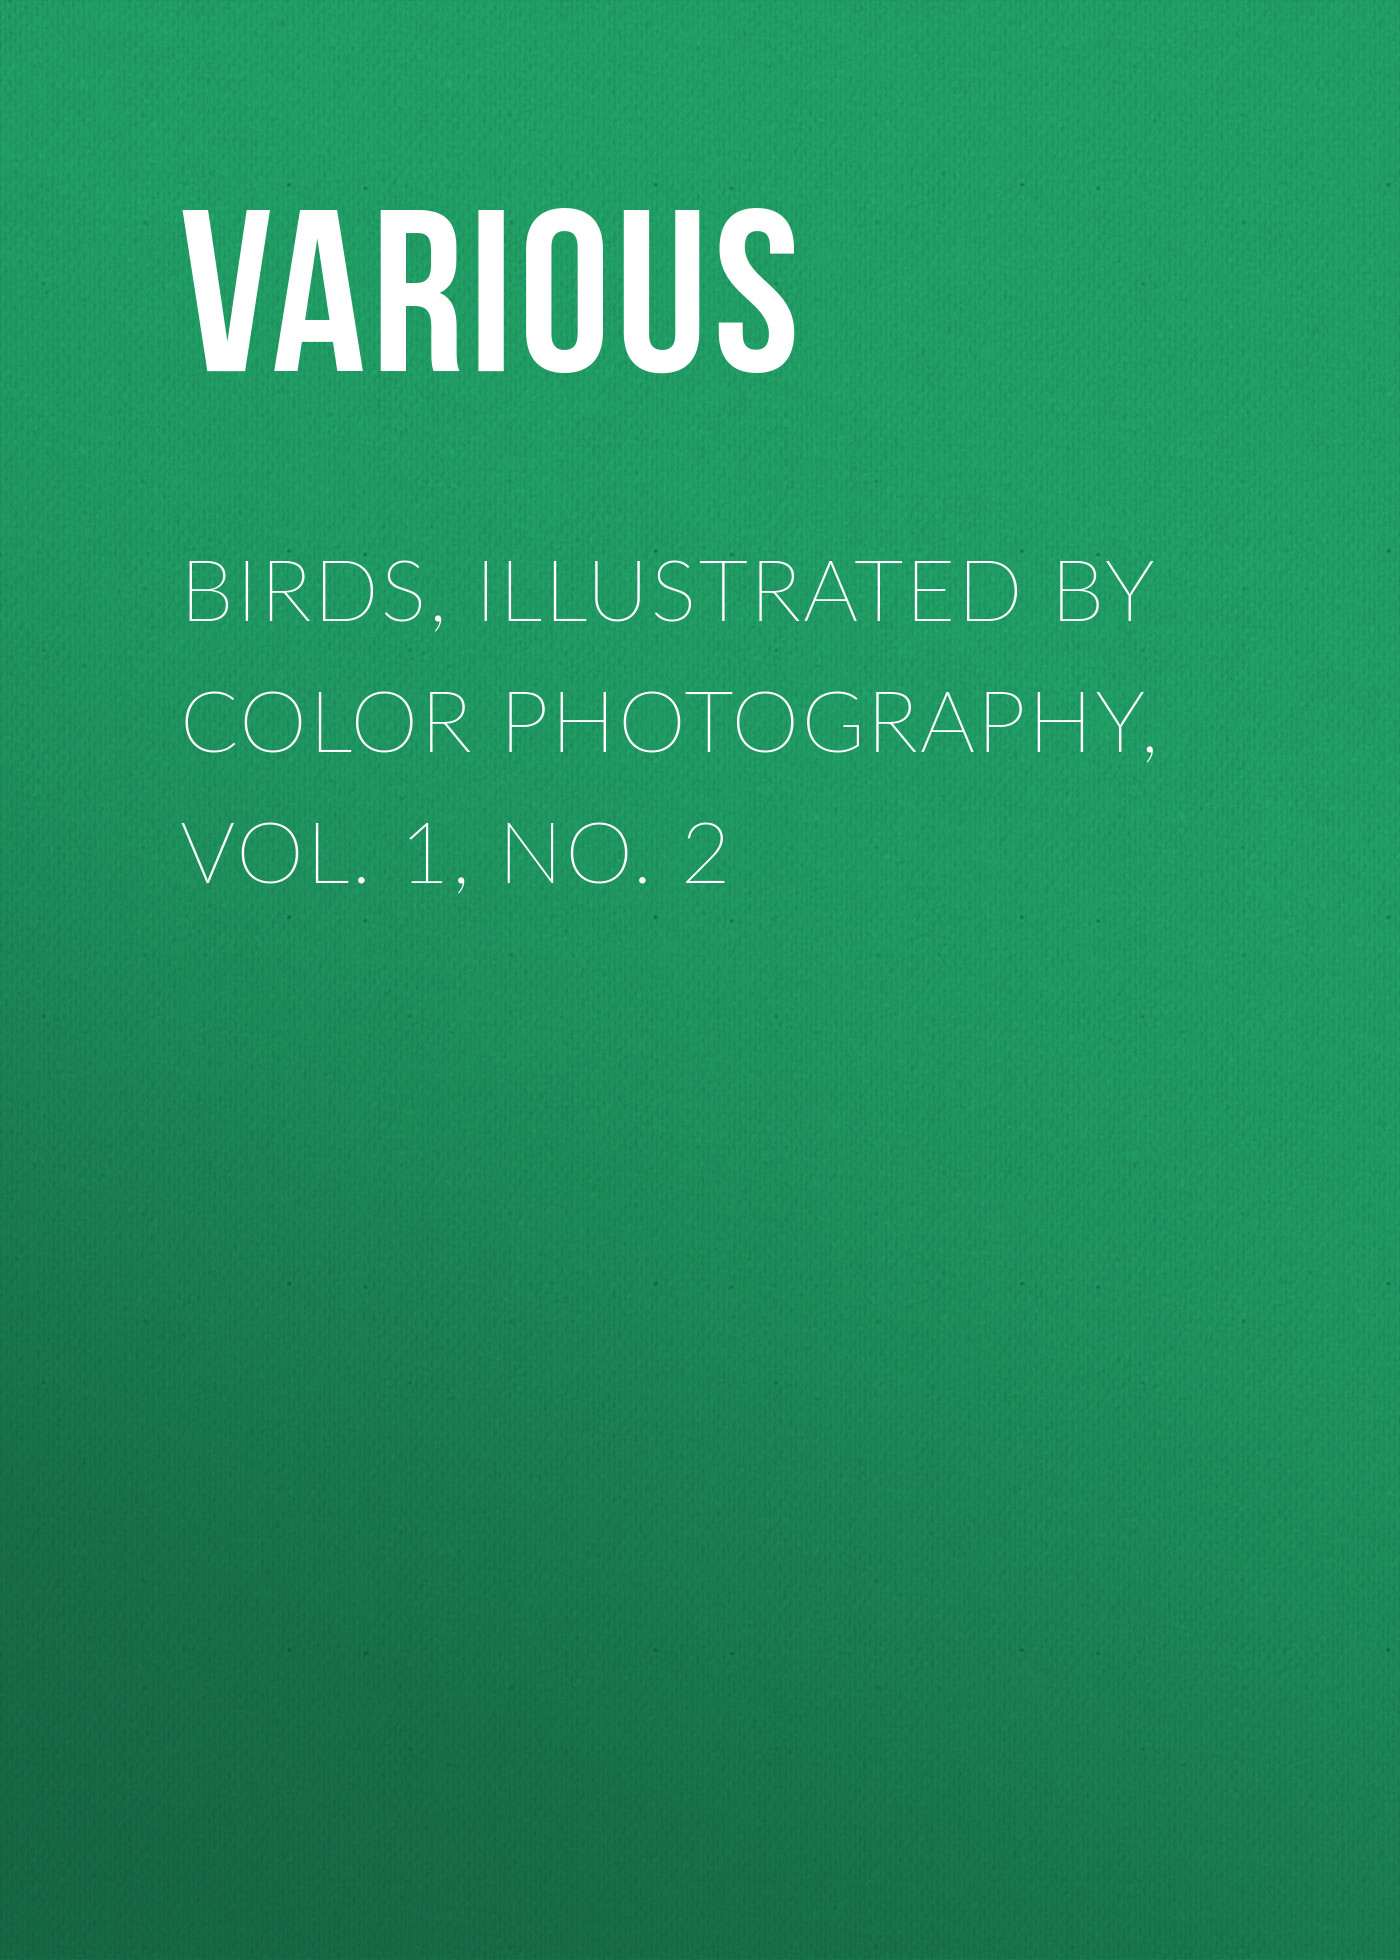 Various Birds, Illustrated by Color Photography, Vol. 1, No. 2 d 6521 dark grey backdrop newborn photography backdrop retro pure color pet photography backgrounds 4x6ft 1 25x2m